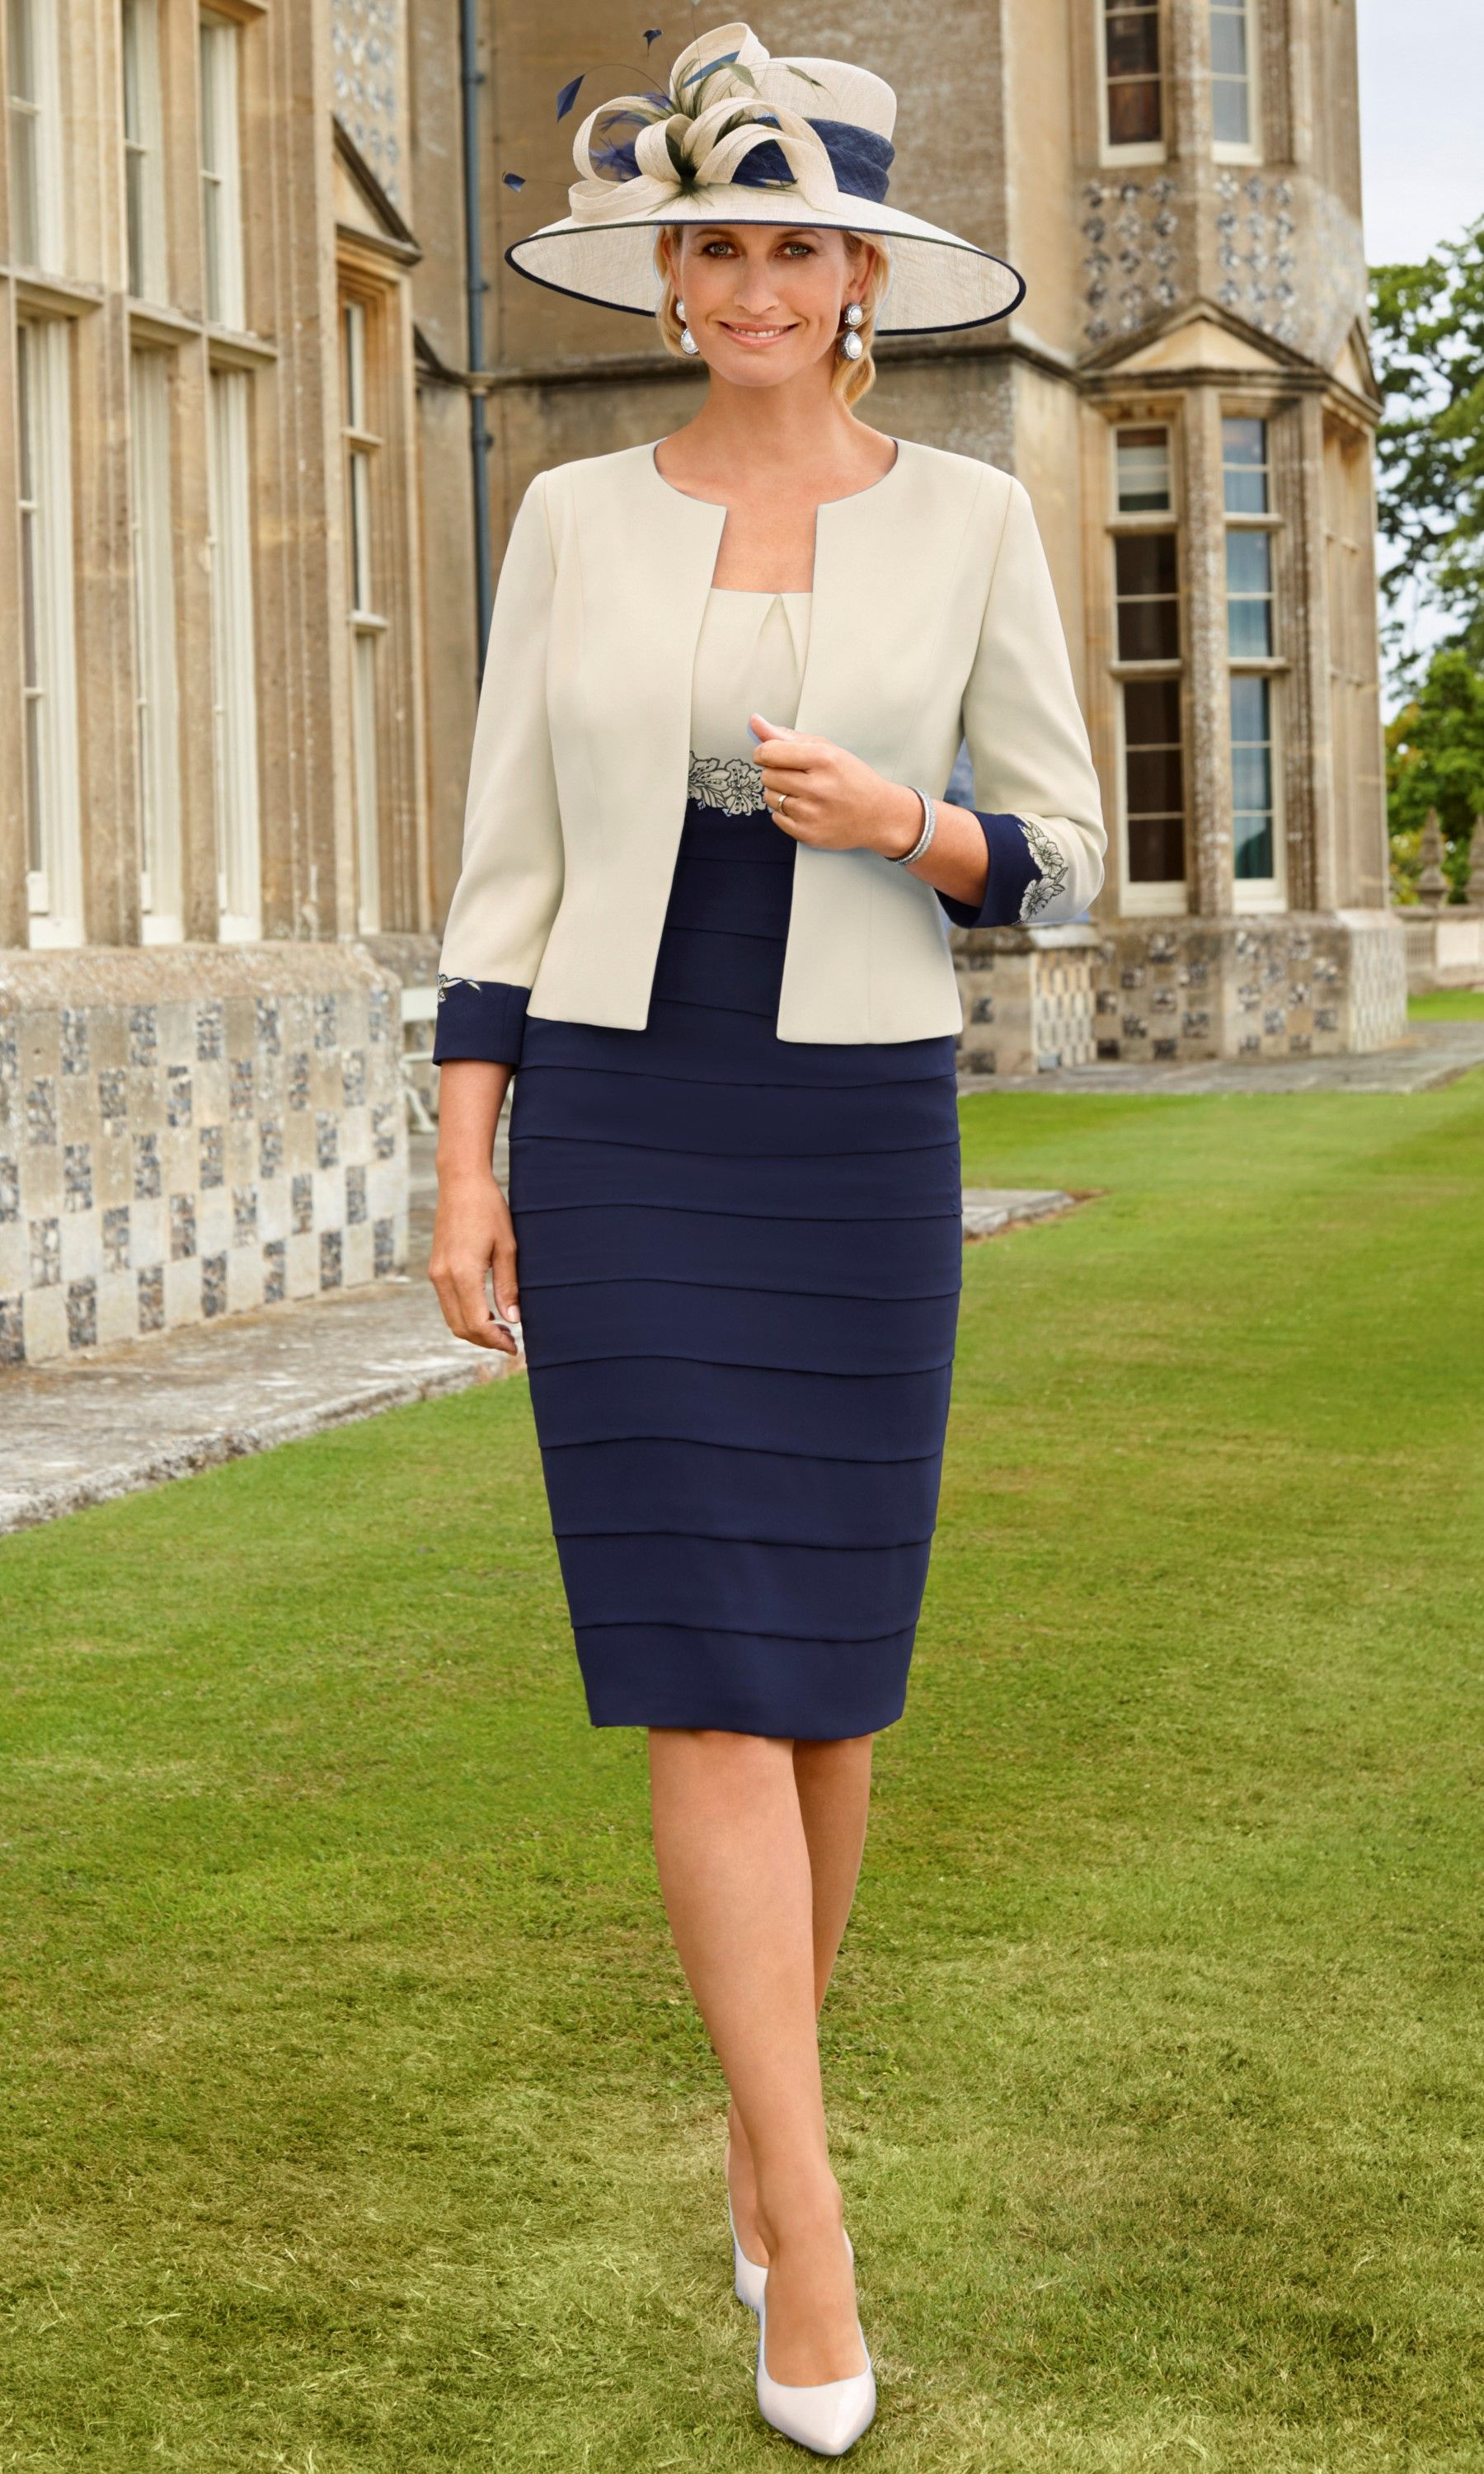 Mother of the bride Autumn - Marianne Fashions Mother Condici fashions mother of the bride